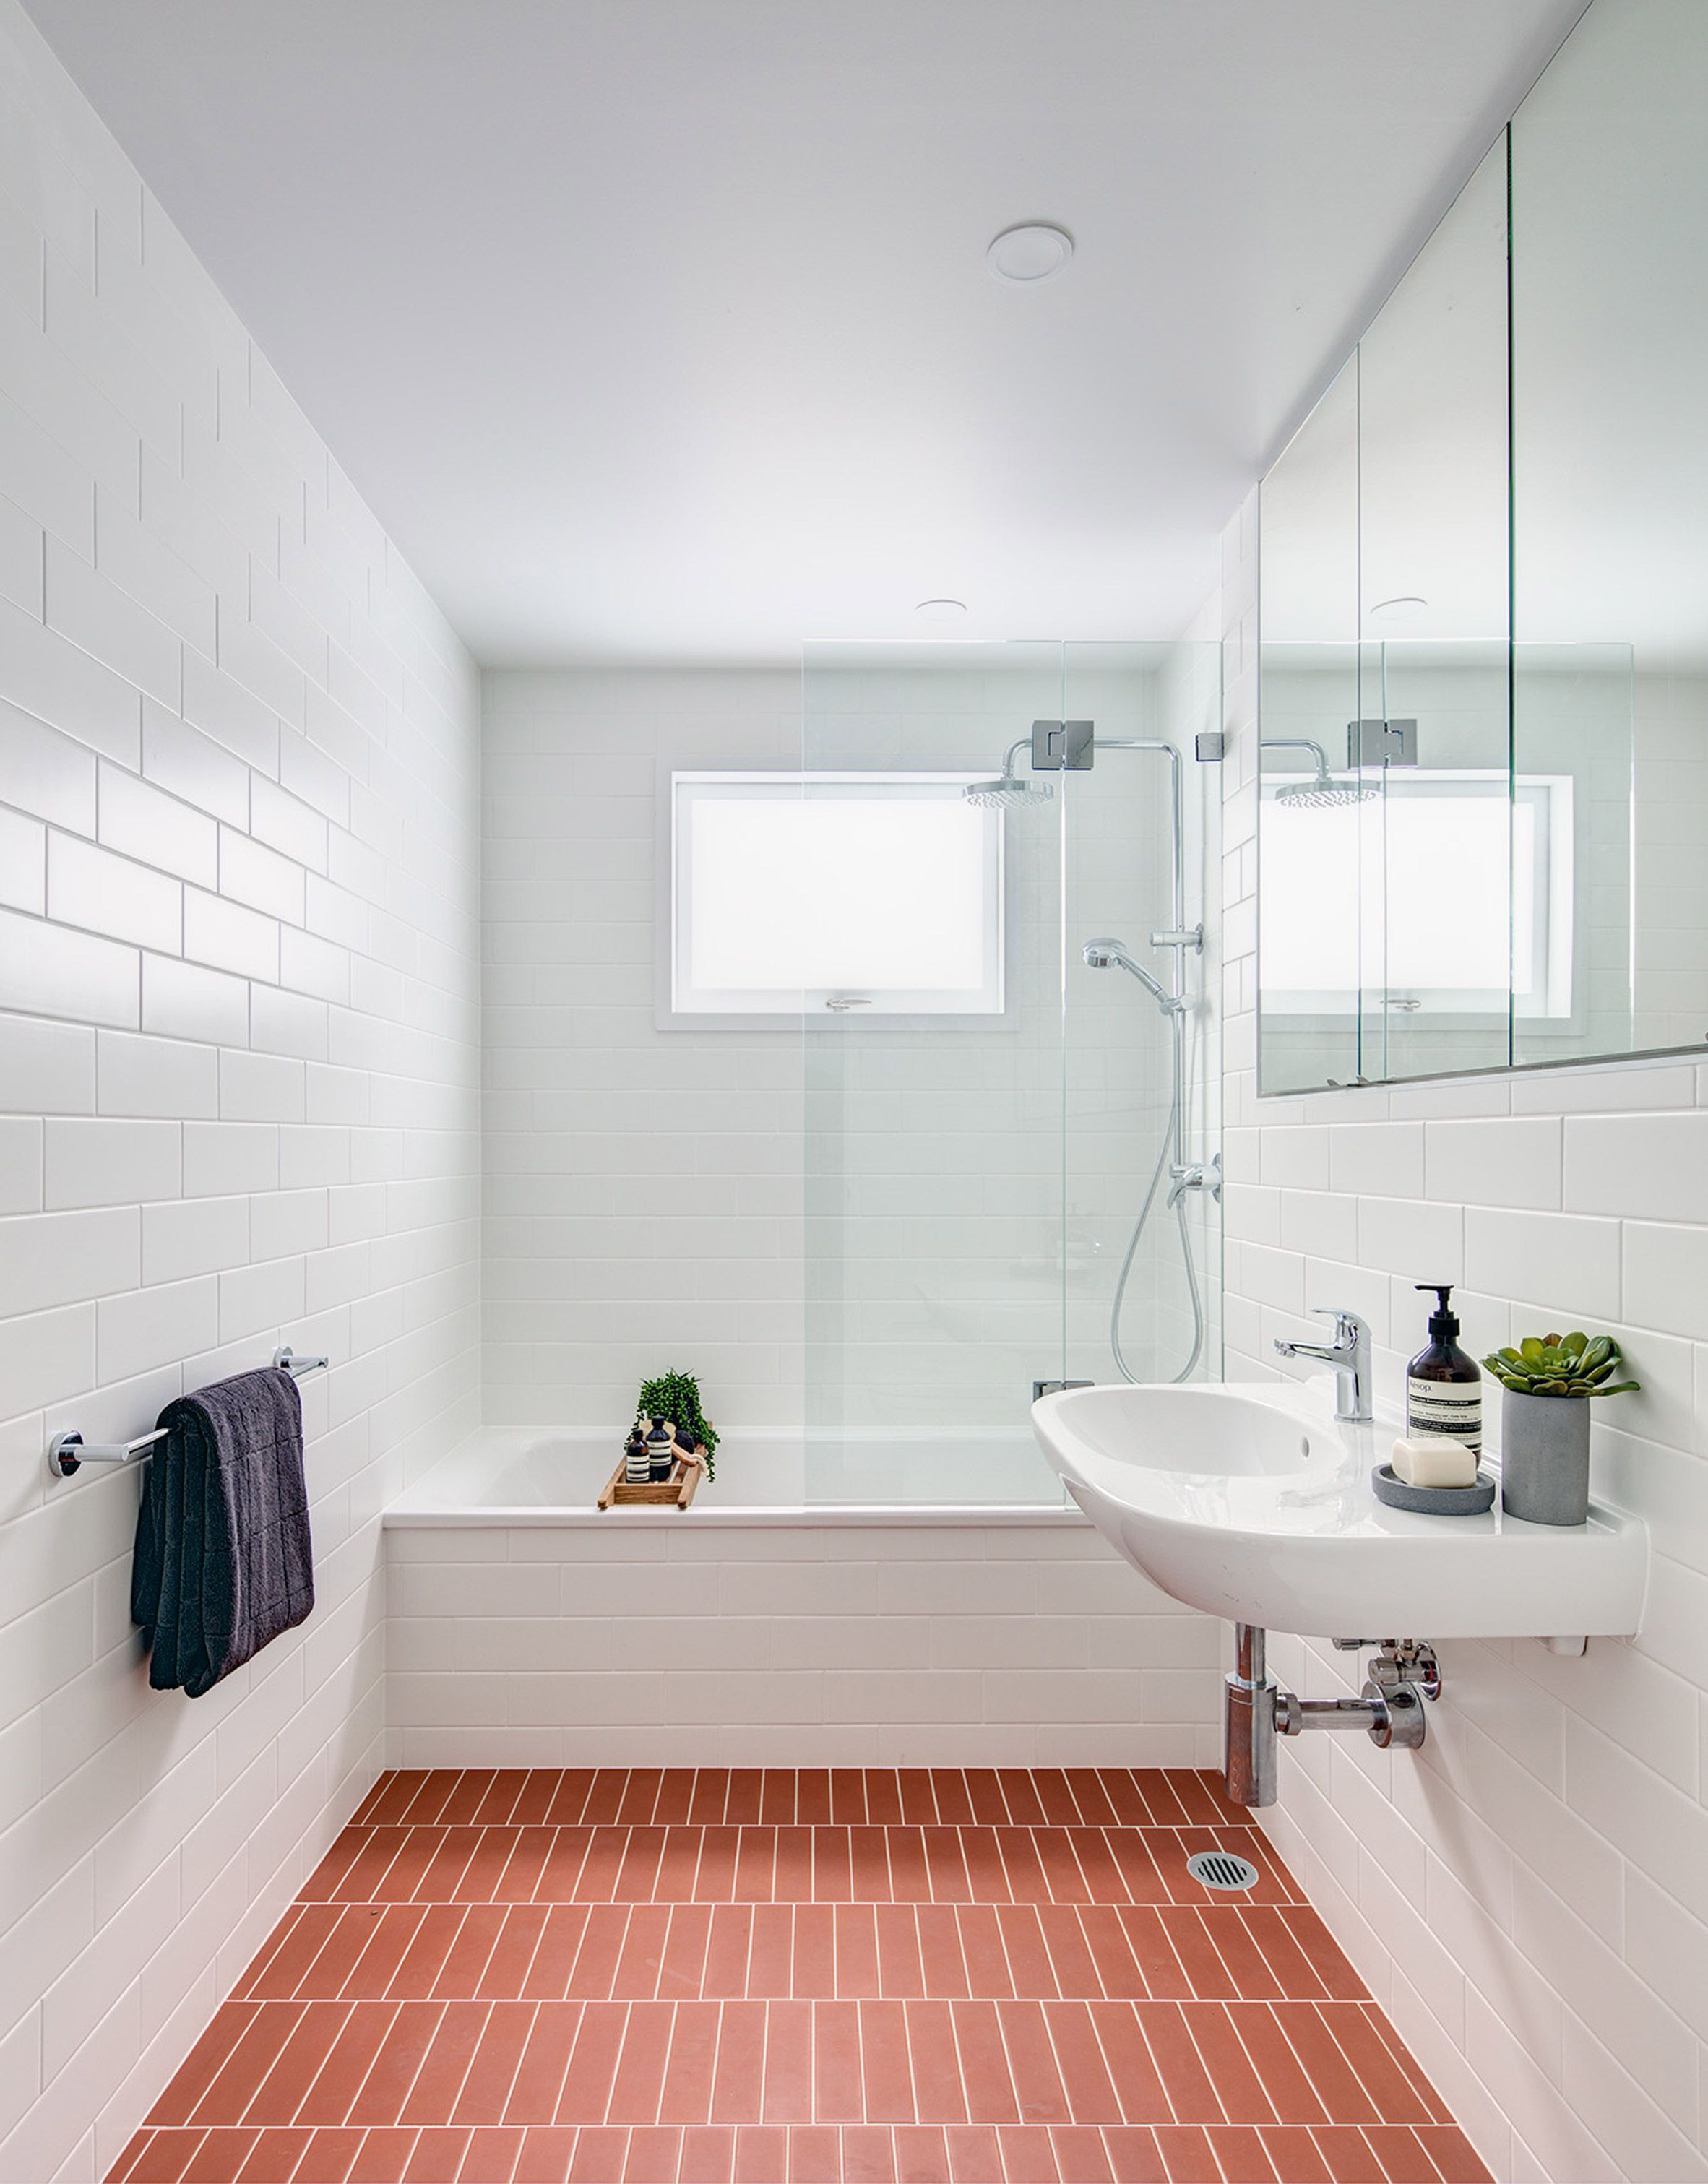 Co Ap Has Renovated And Extended A Typical Suburban Home In Australia Adding A Two Storey Bathroom Interior Design Manufactured Home Remodel Bathroom Interior